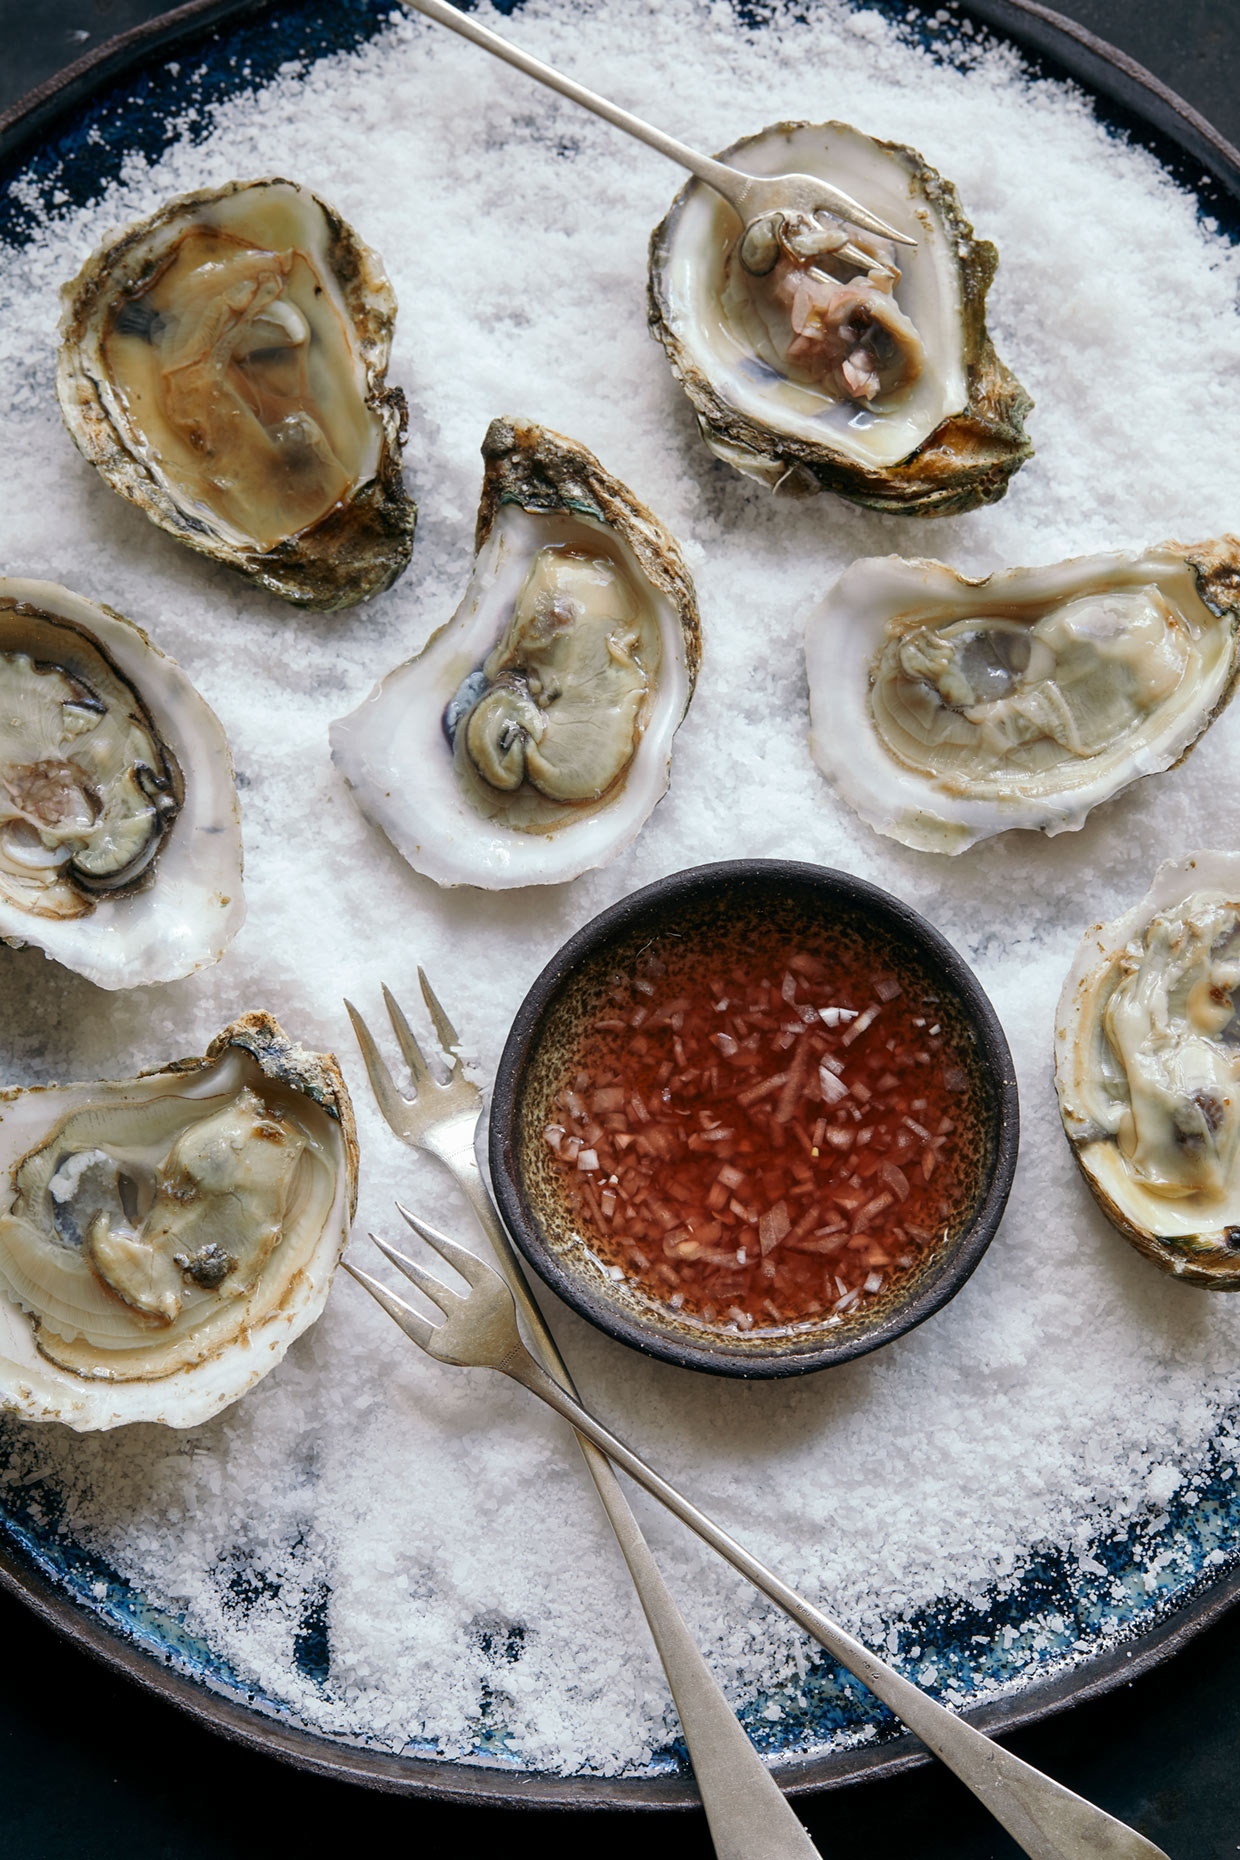 Oysters - Food and Product Photographer Los Angeles